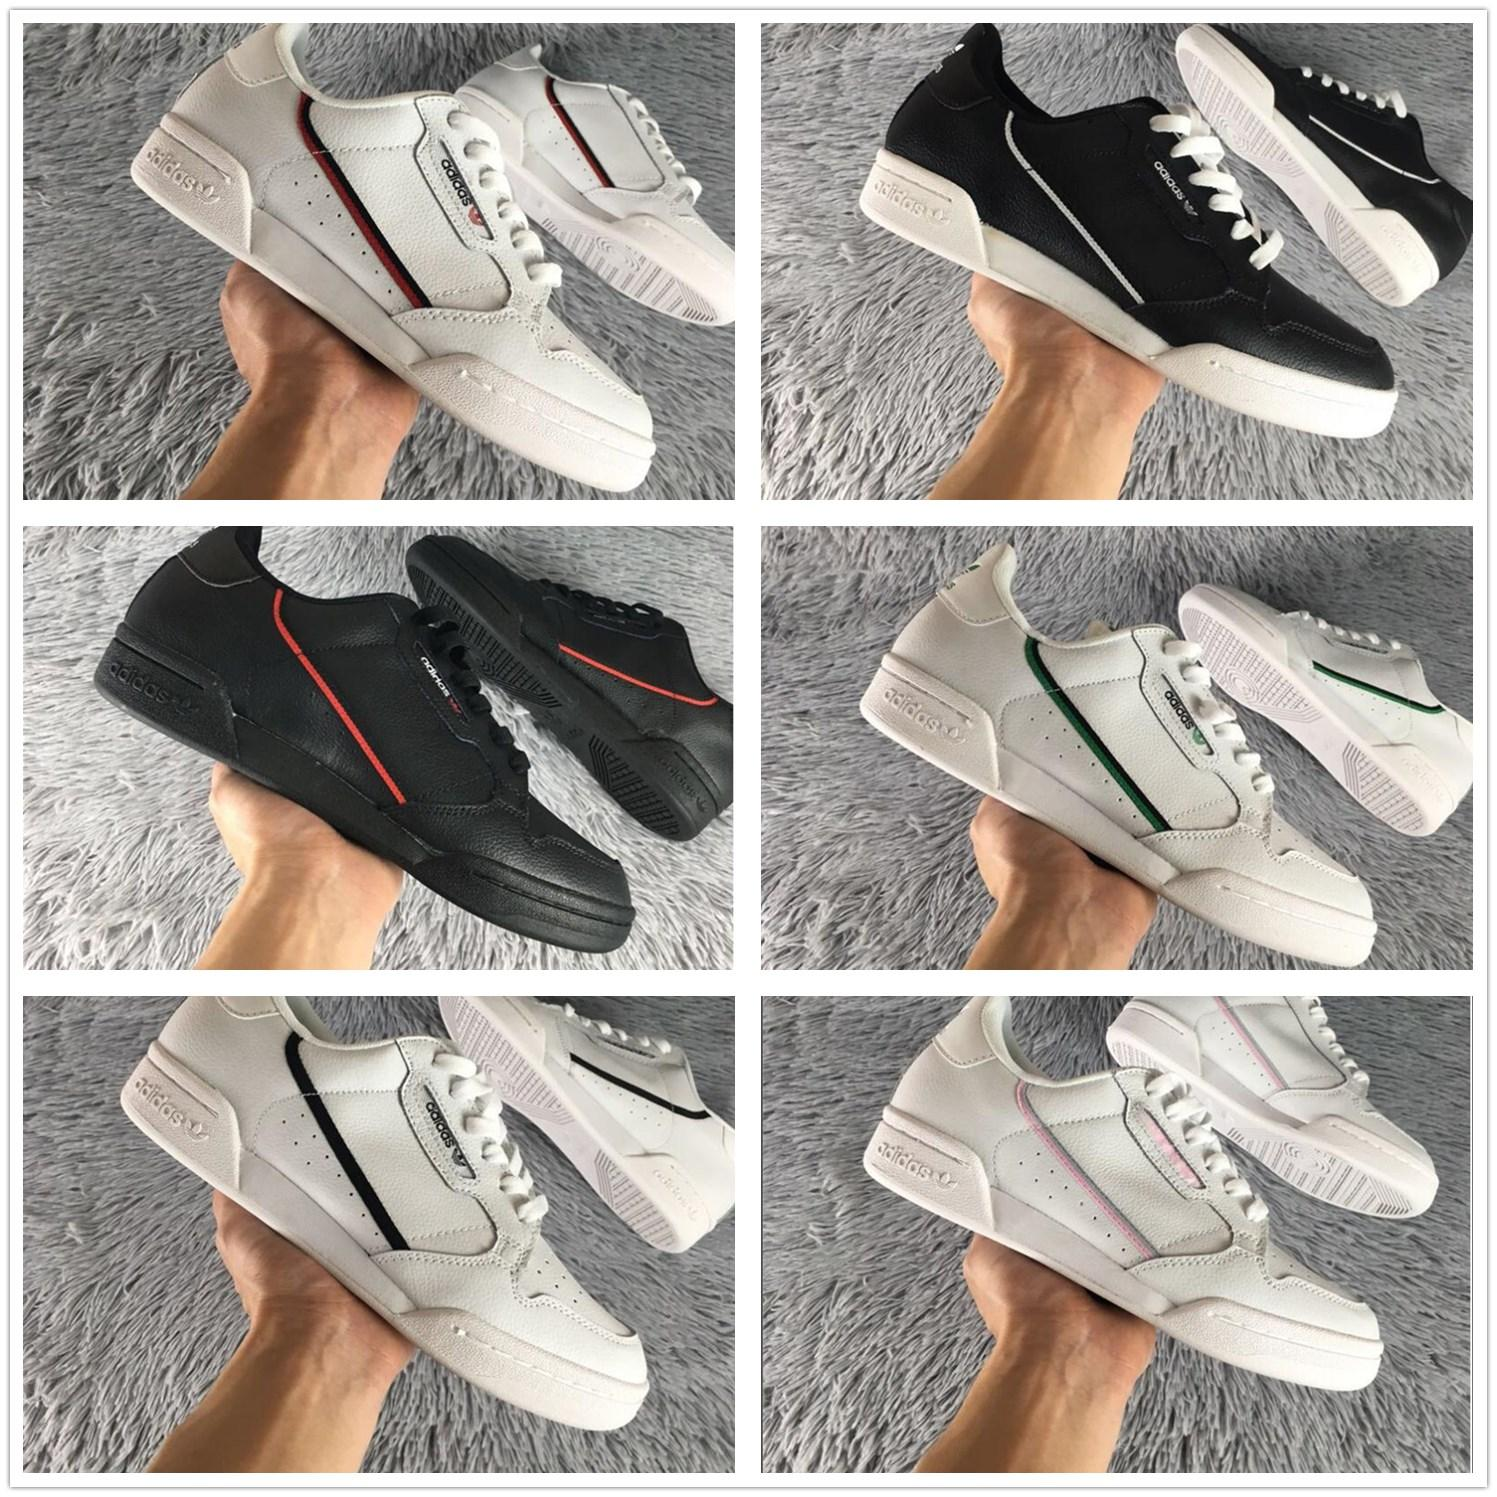 best loved b4542 80ec3 New 2018 Original Continental 80 Rascal Leather X Kanye West Running Shoes  Good Quality White Black Men Fashion Sports Sneakers Scholl Shoes Leopard  Print ...